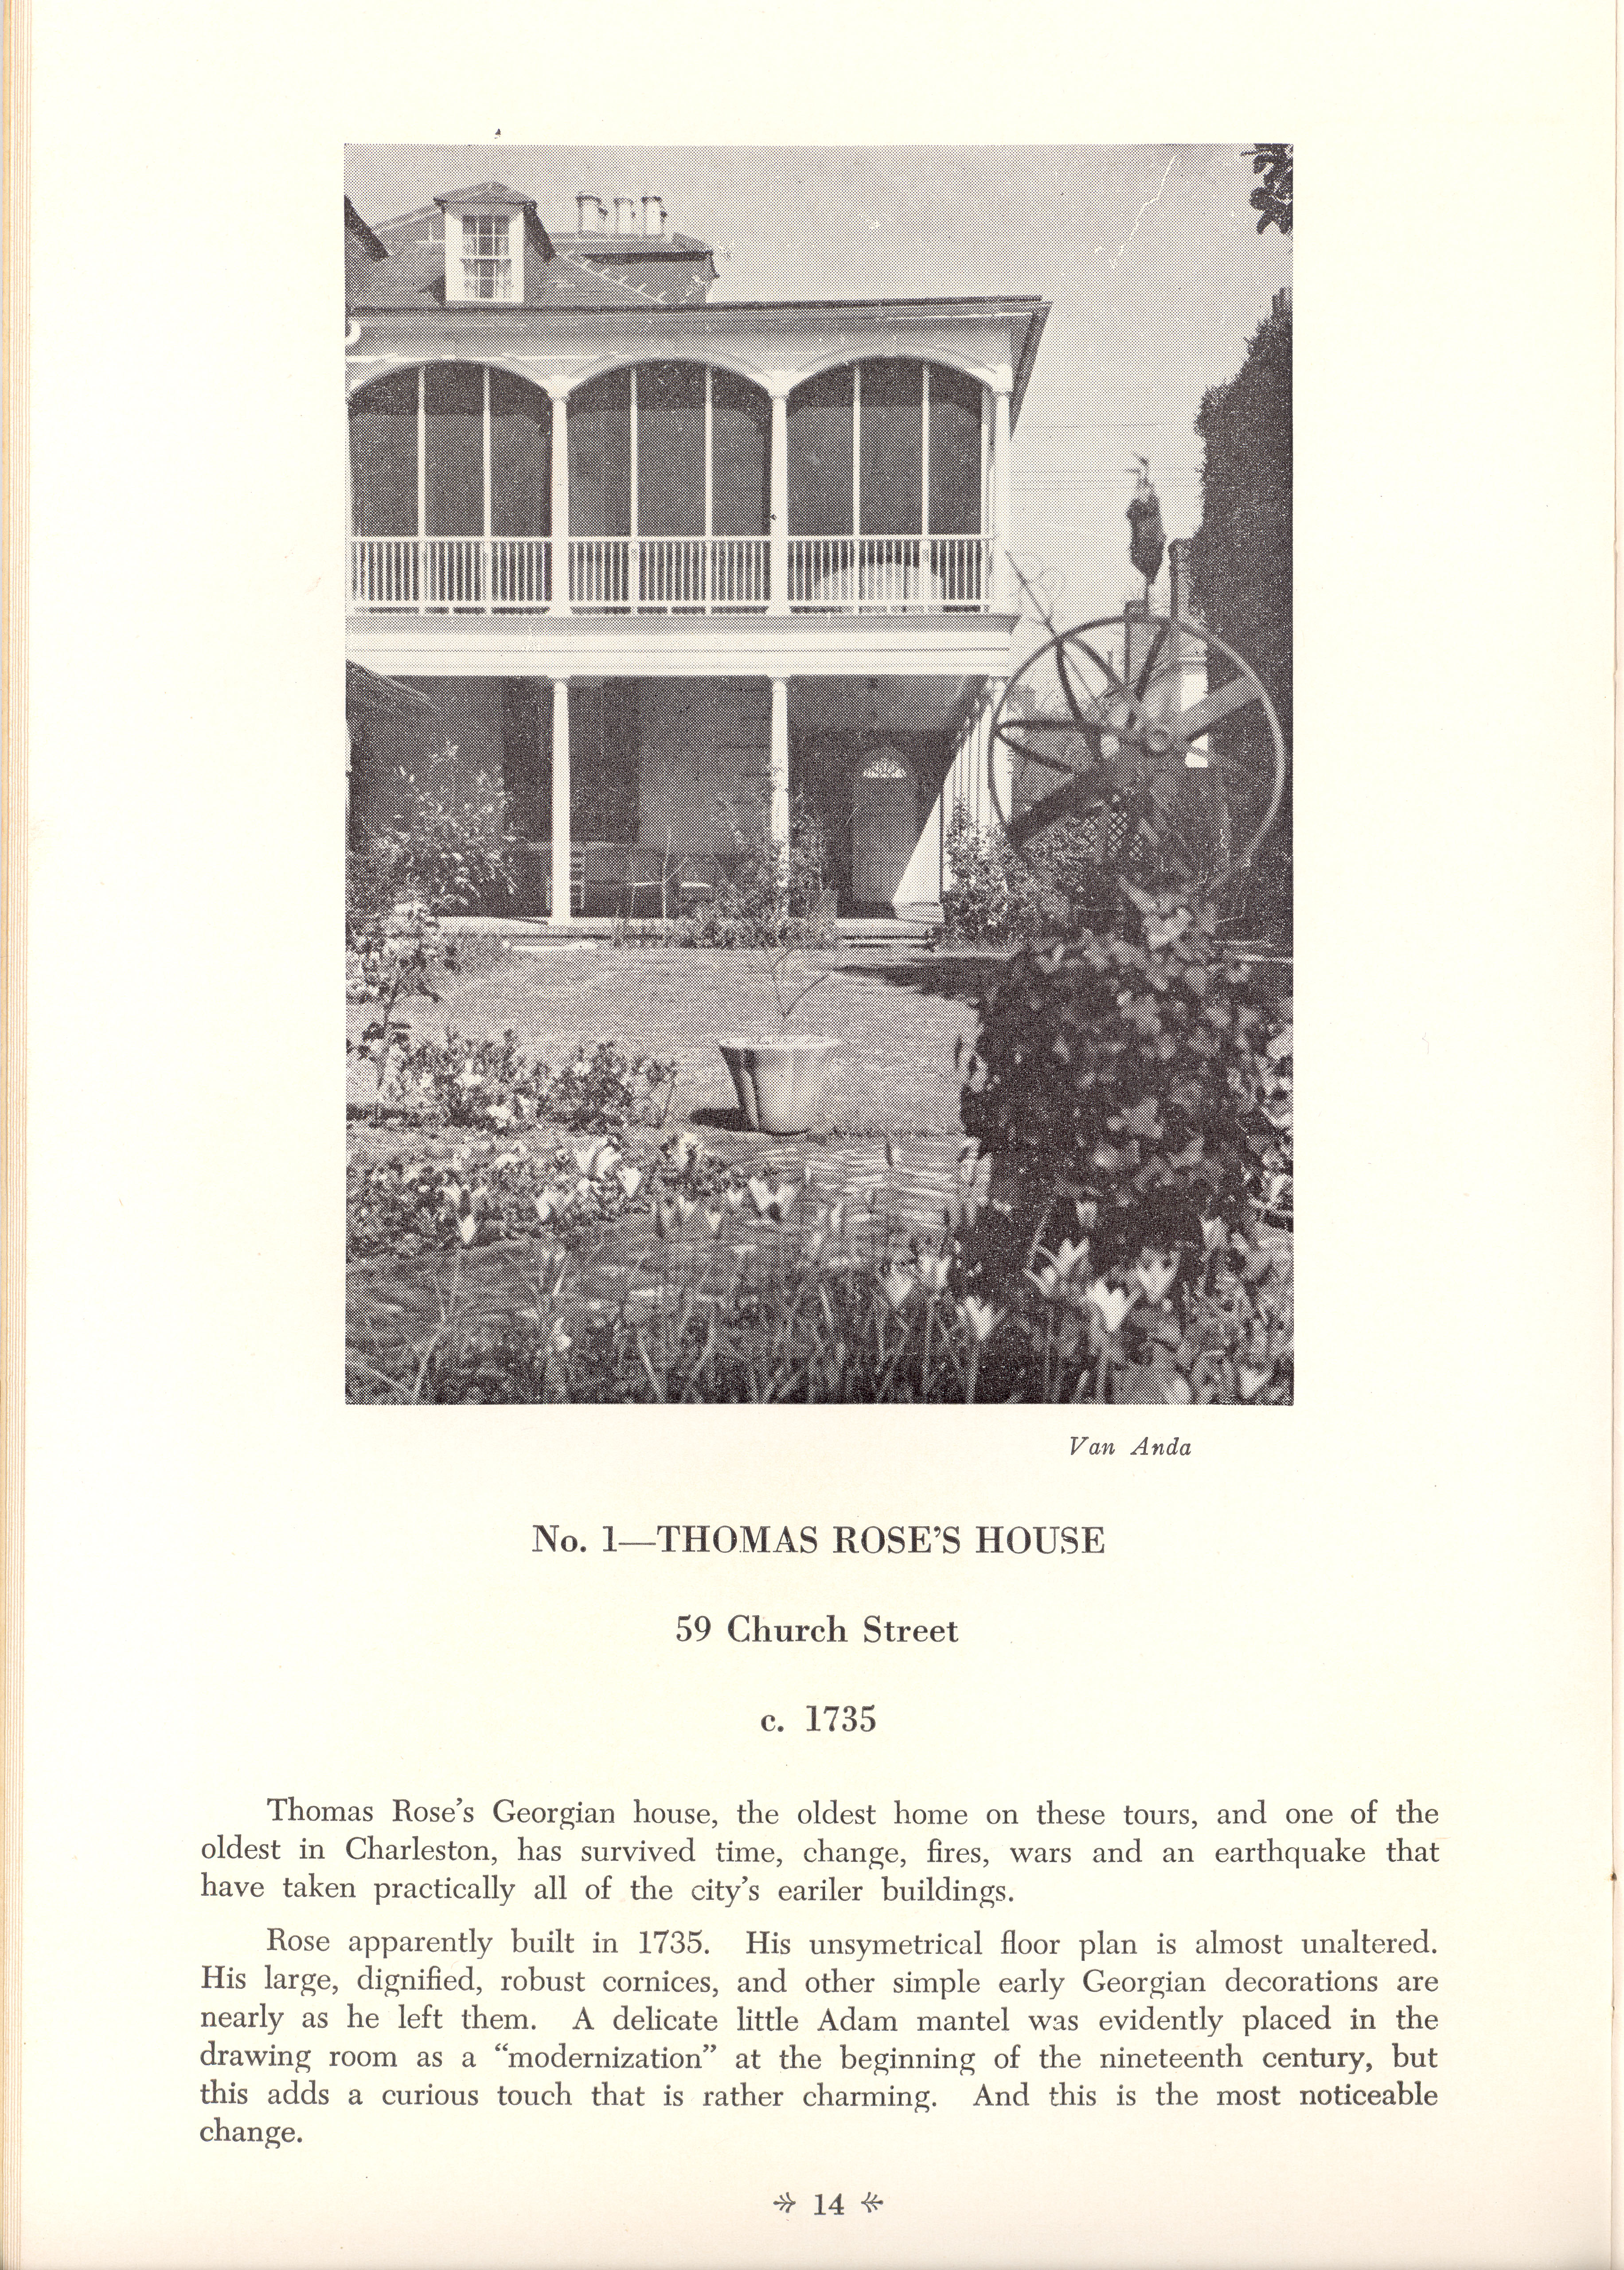 Page 14:  No. 1 - Thomas Rose's House, 59 Church Street, c. 1735